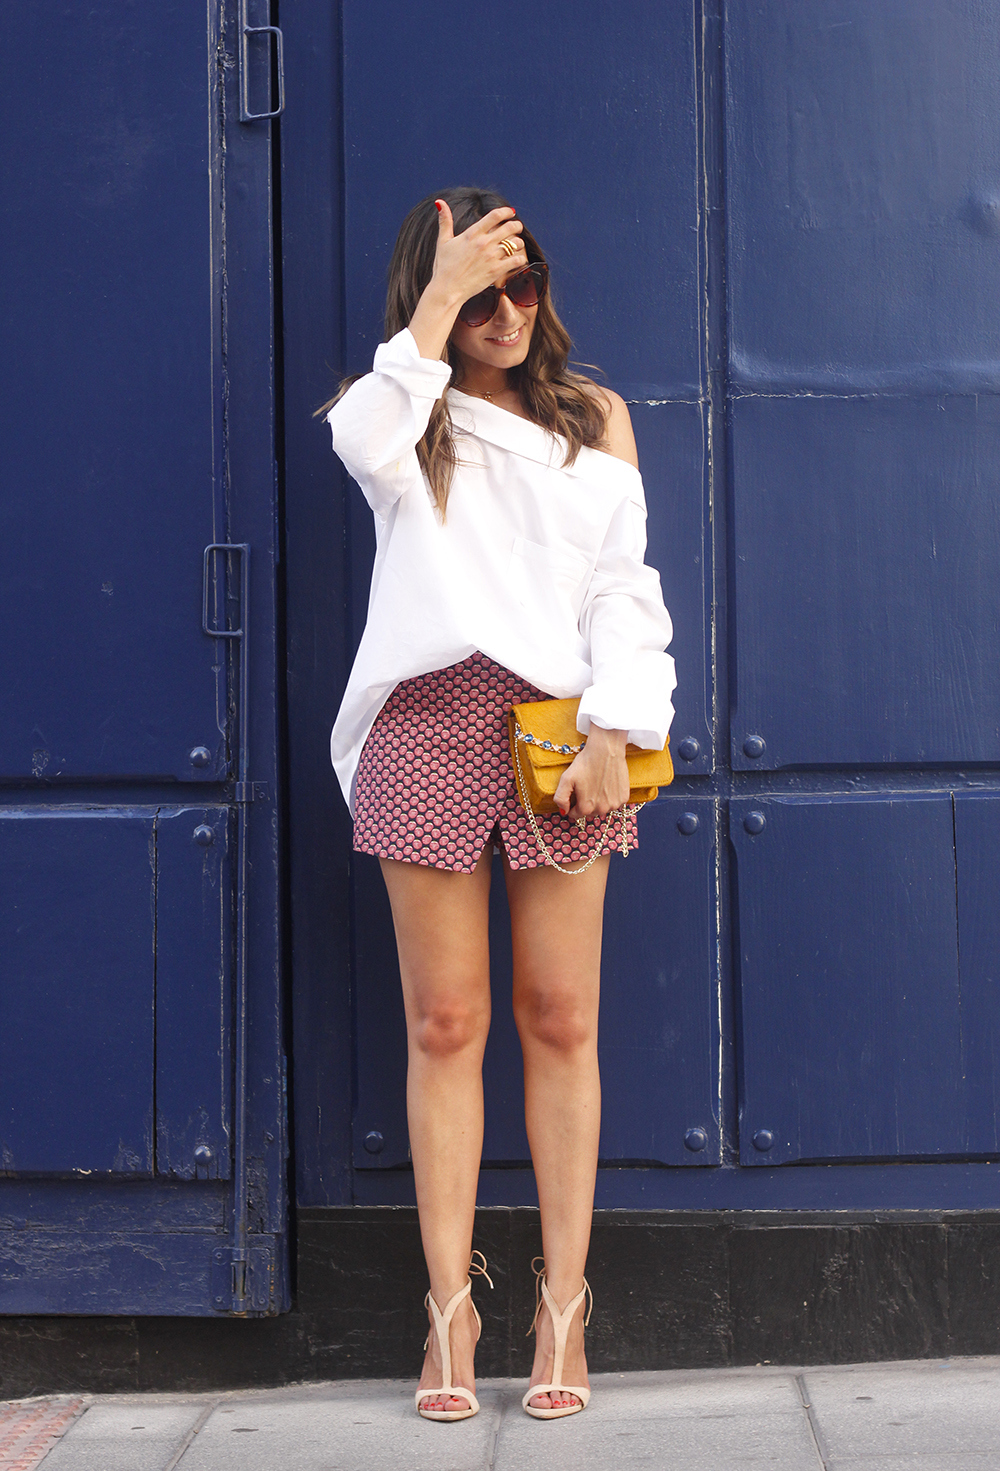 White shirt with printed shorts uterquë bag summer outfit style heels01